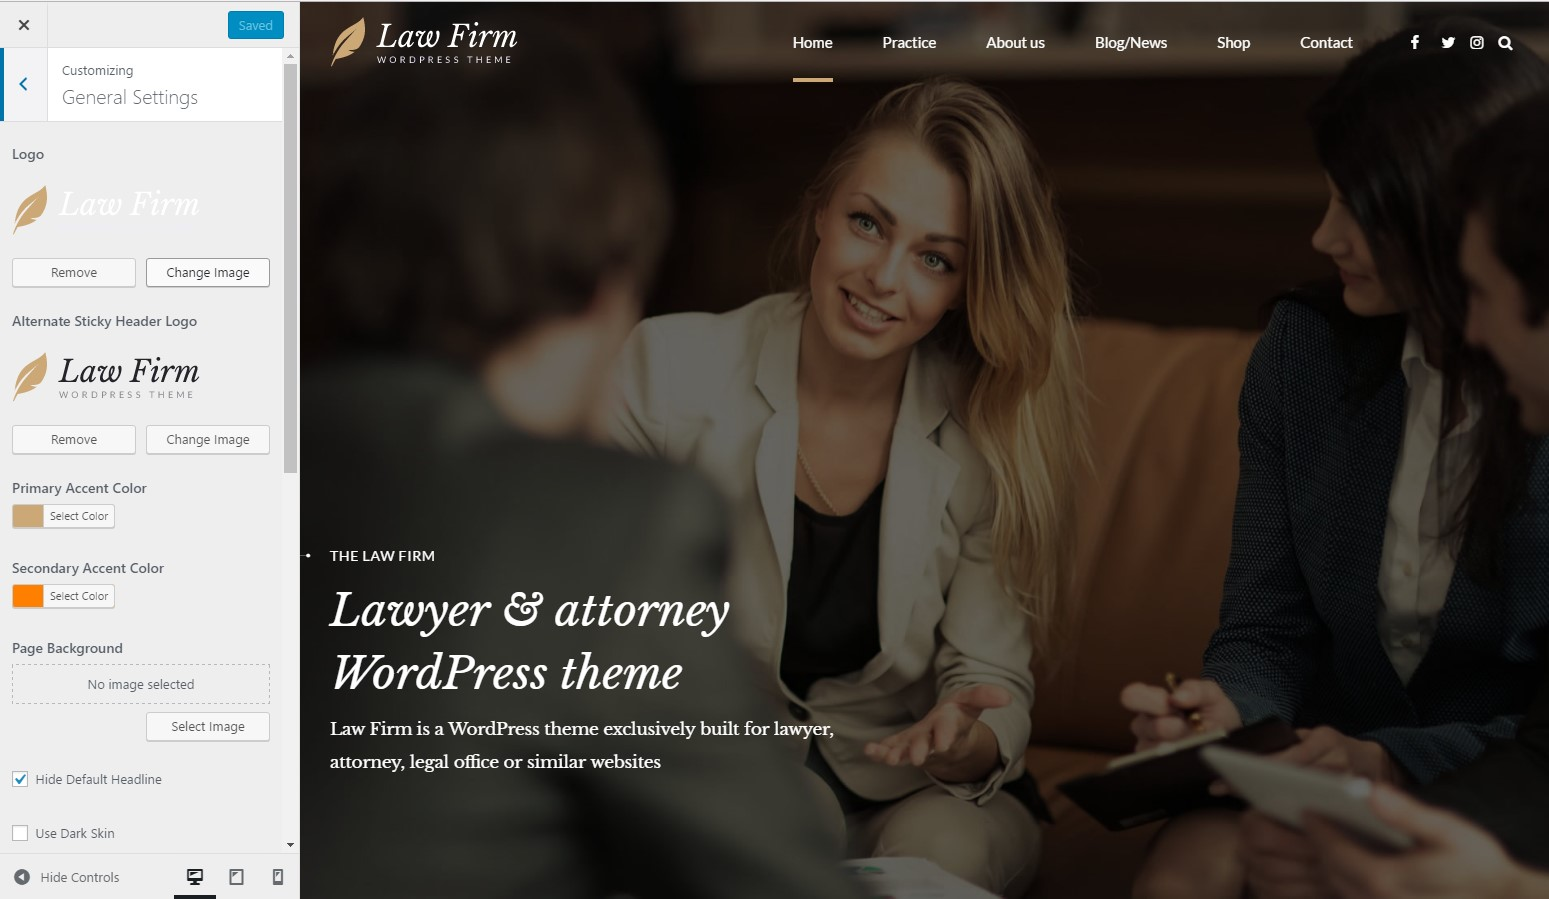 http://documentation.bold-themes.com/law-firm/wp-content/uploads/sites/15/2017/05/11-1.jpg